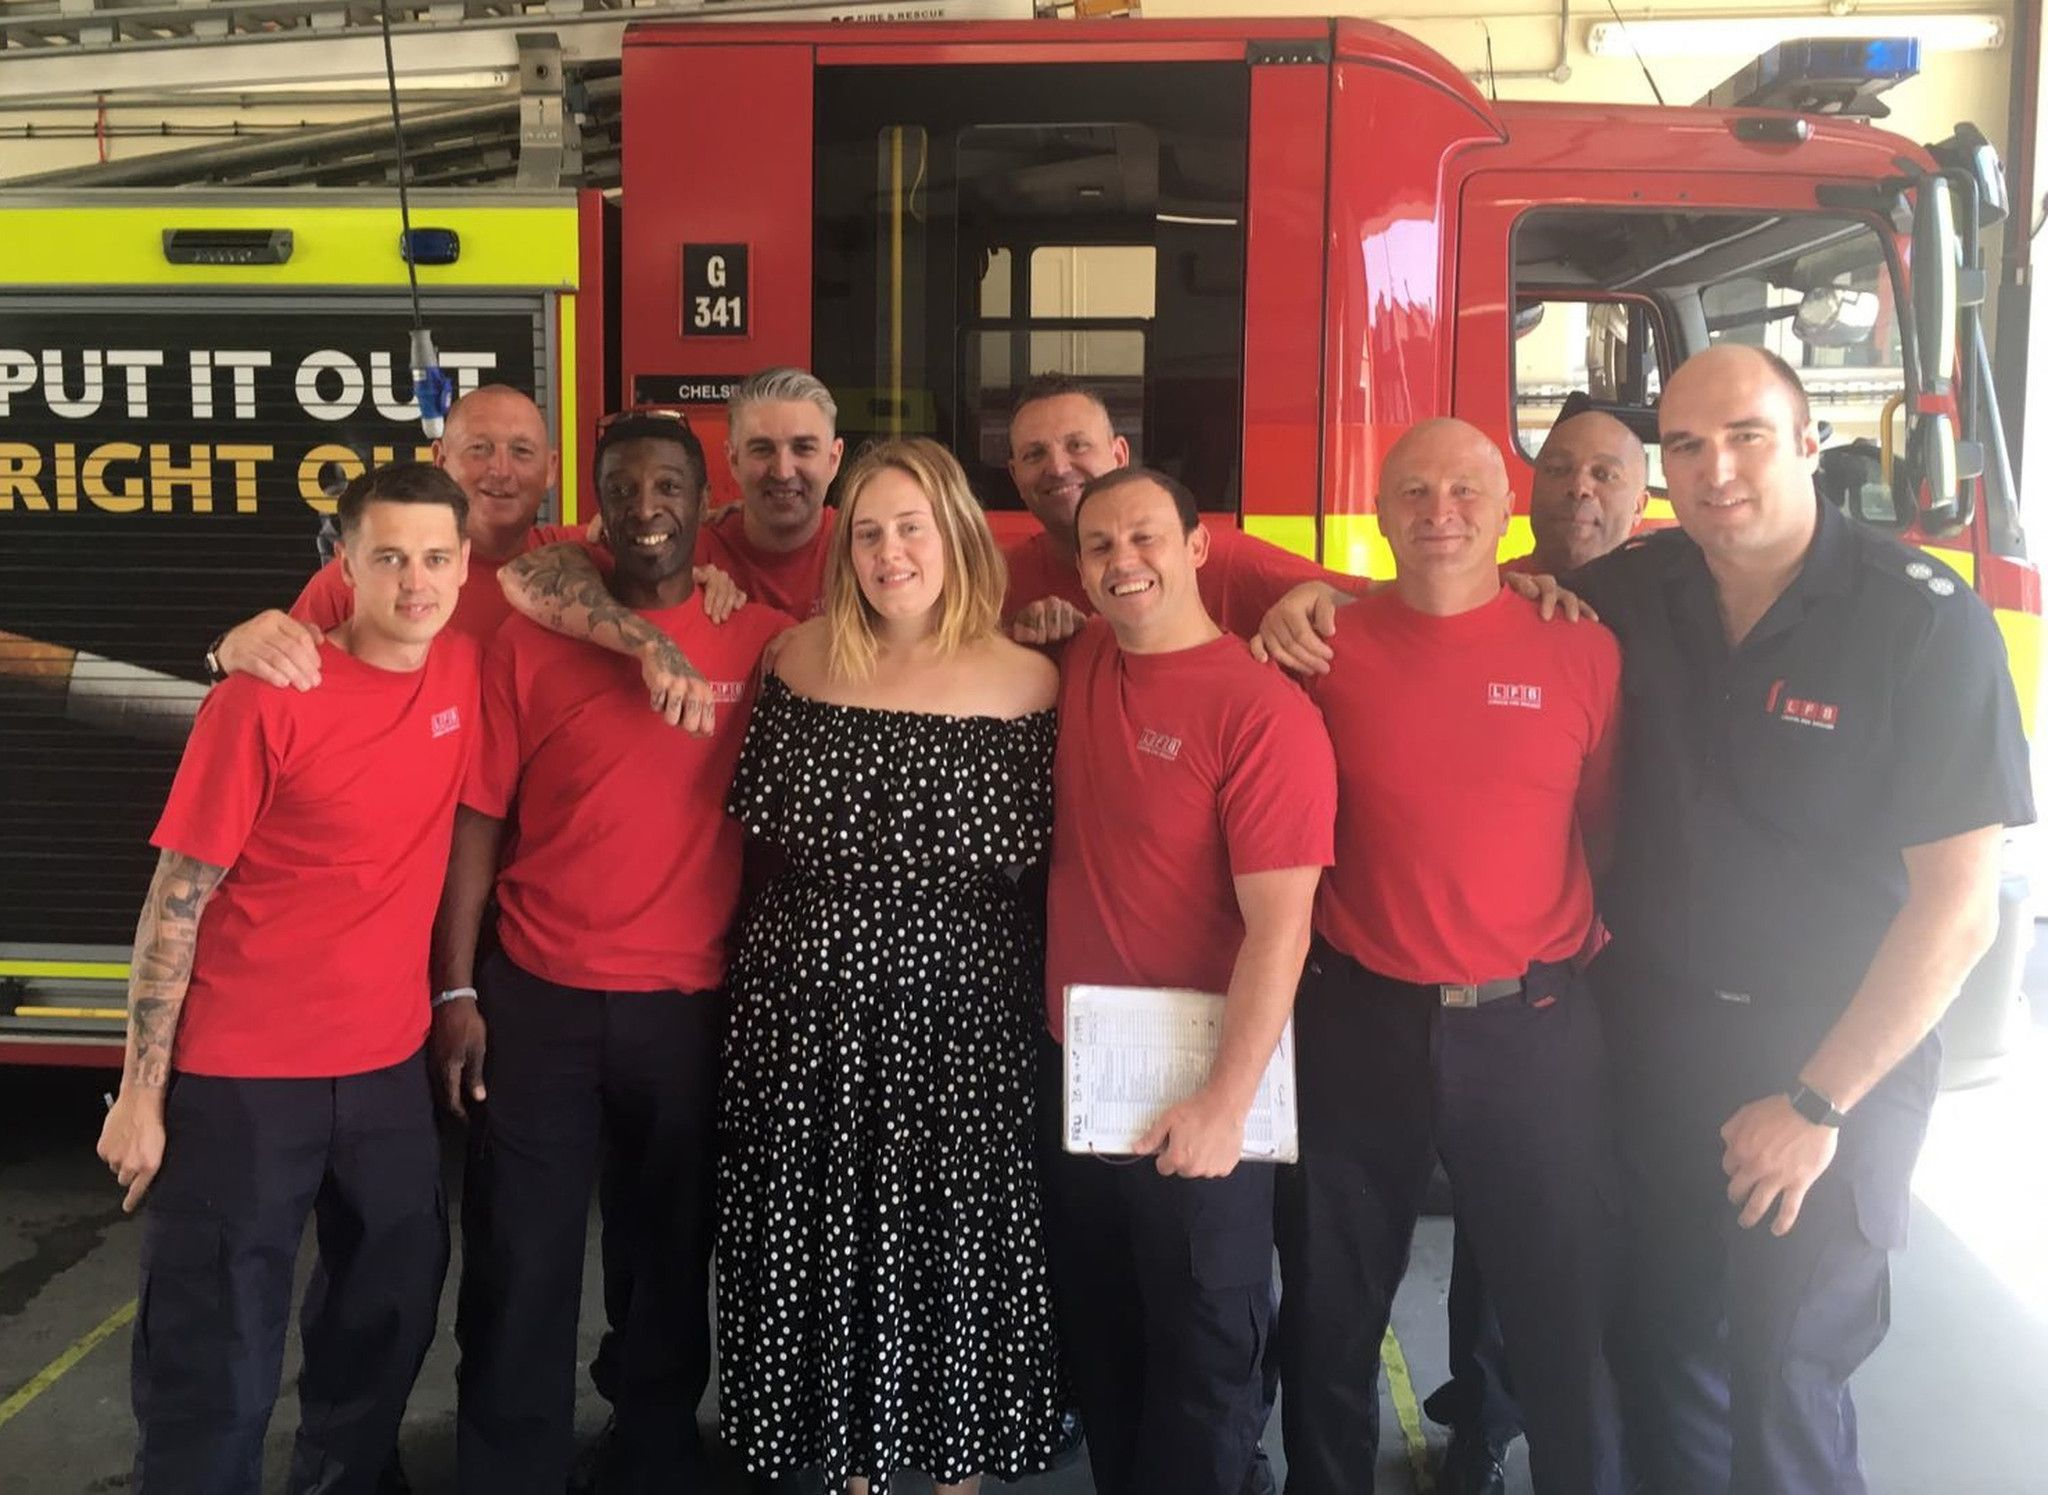 Adele surprises London firefighters after deadly Grenfell Tower fire